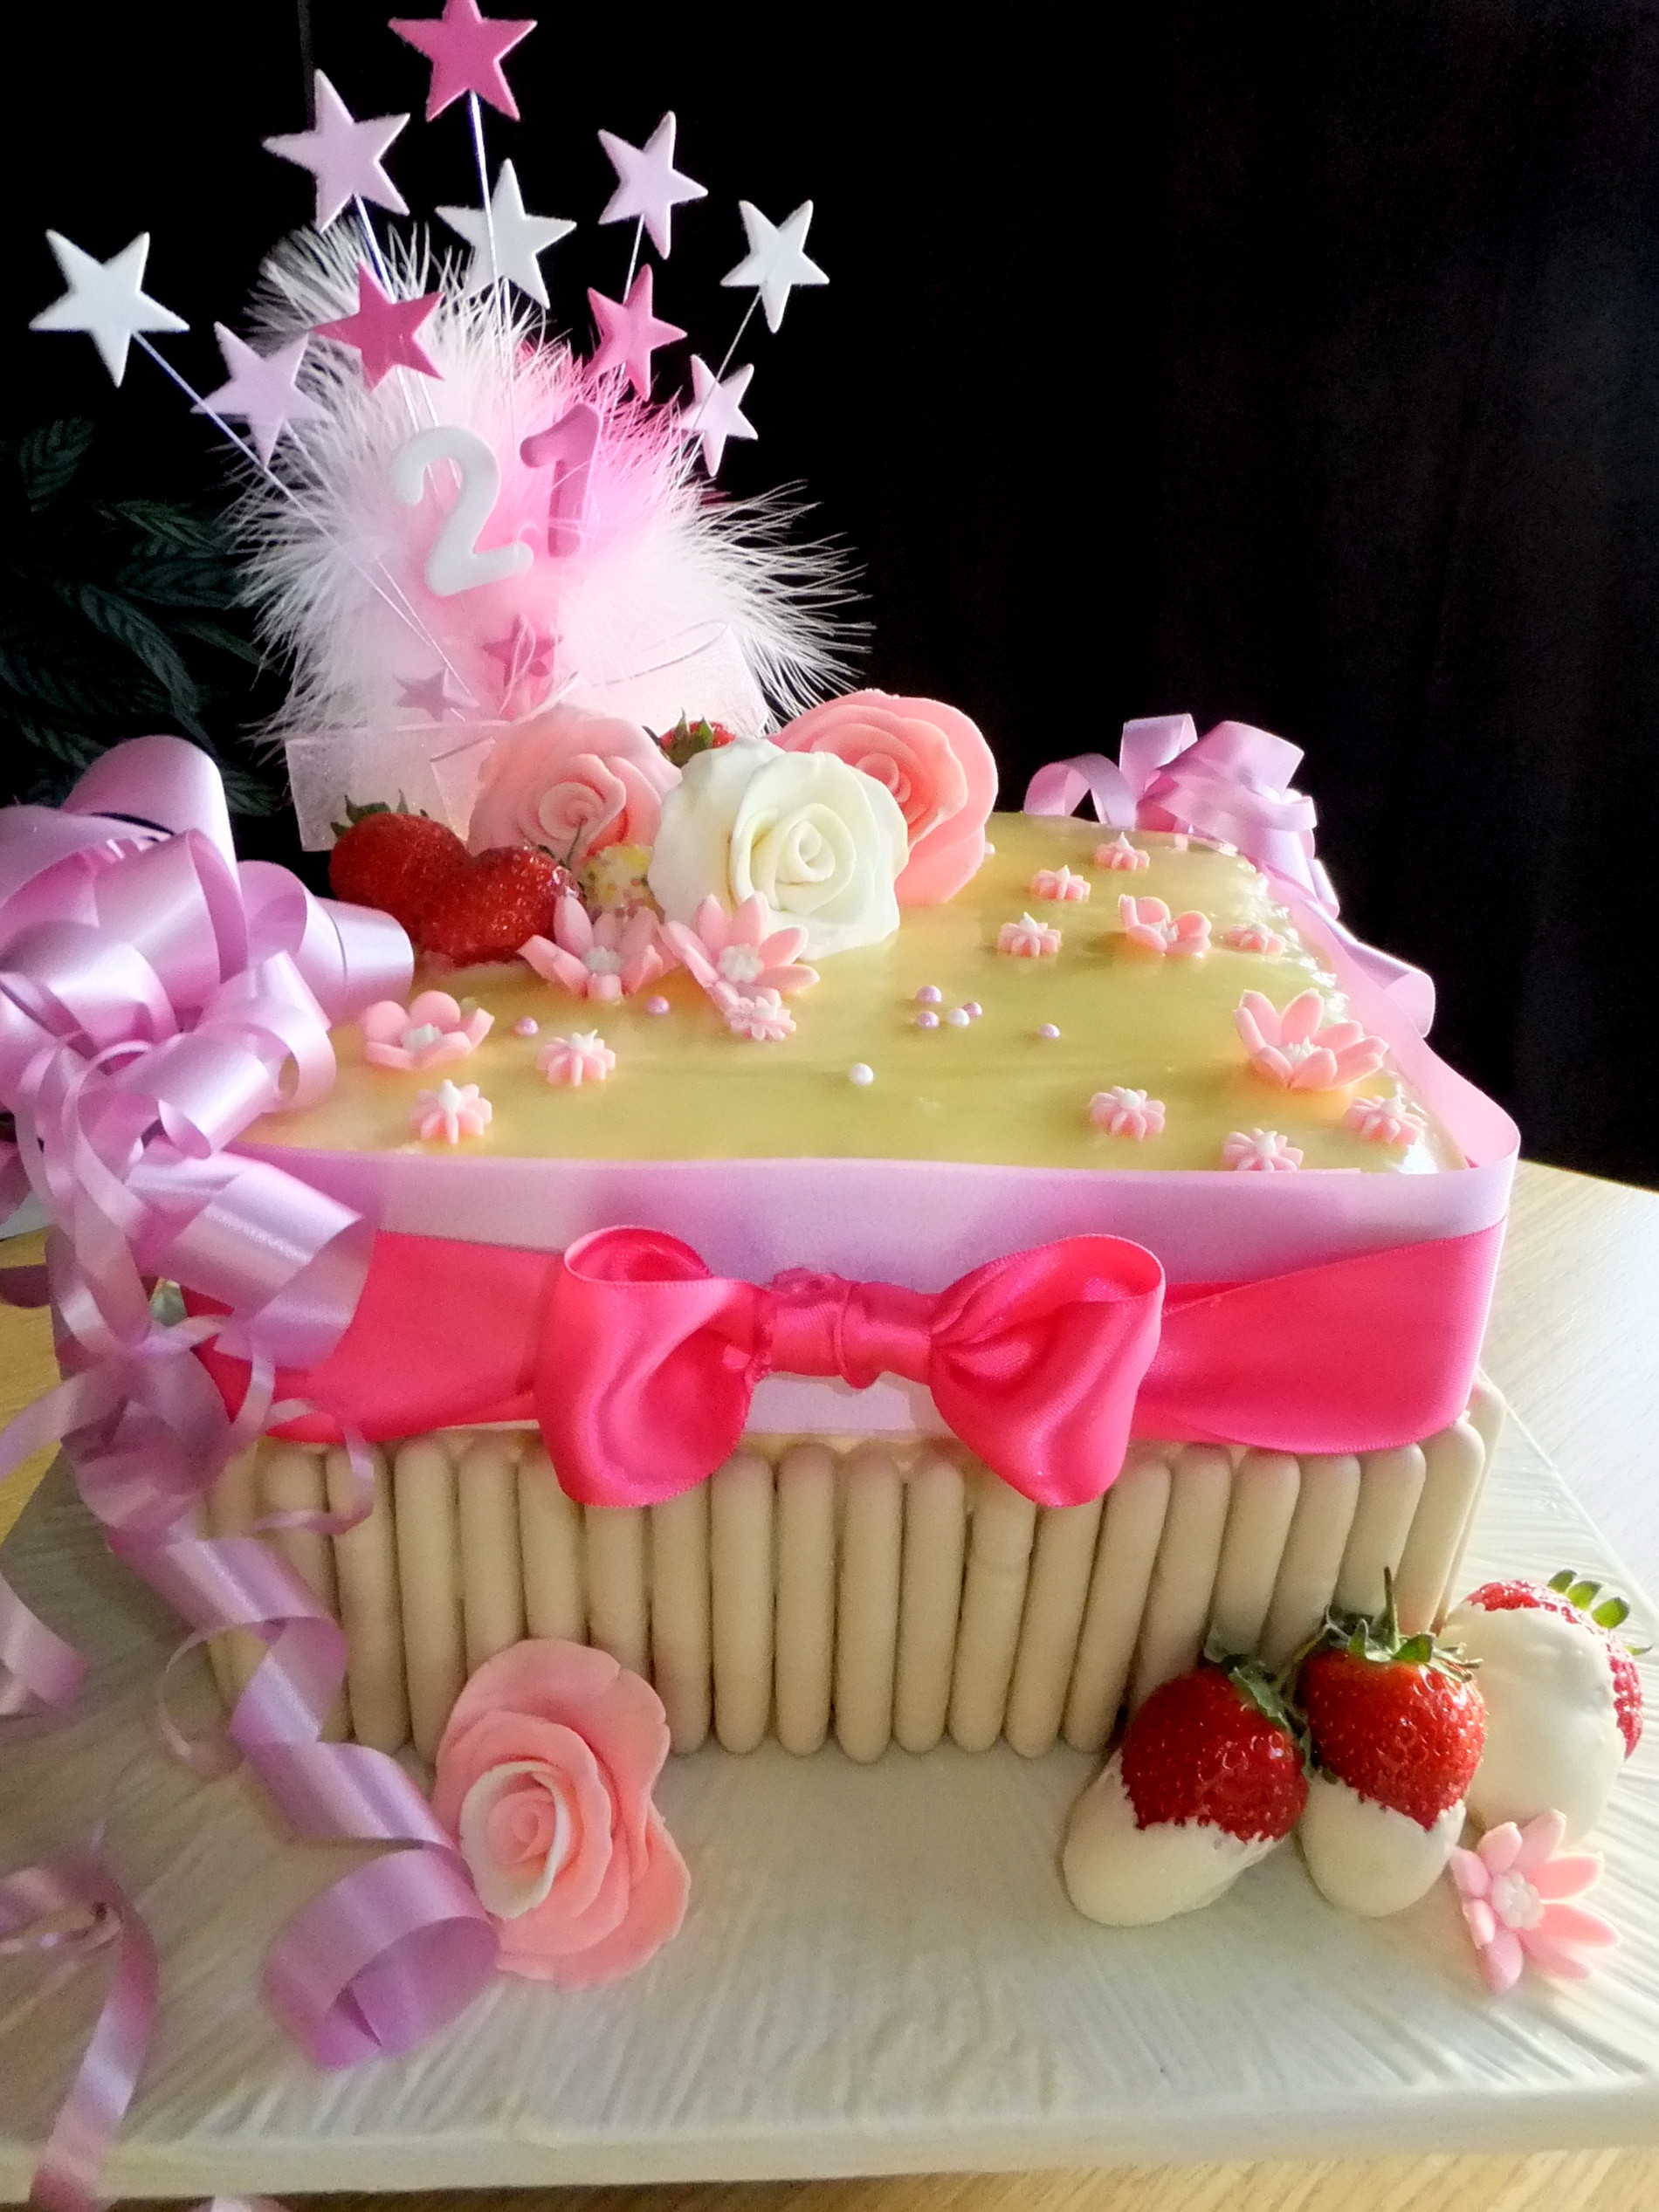 Best ideas about 21st Birthday Cake . Save or Pin 21st Birthday Cake Now.